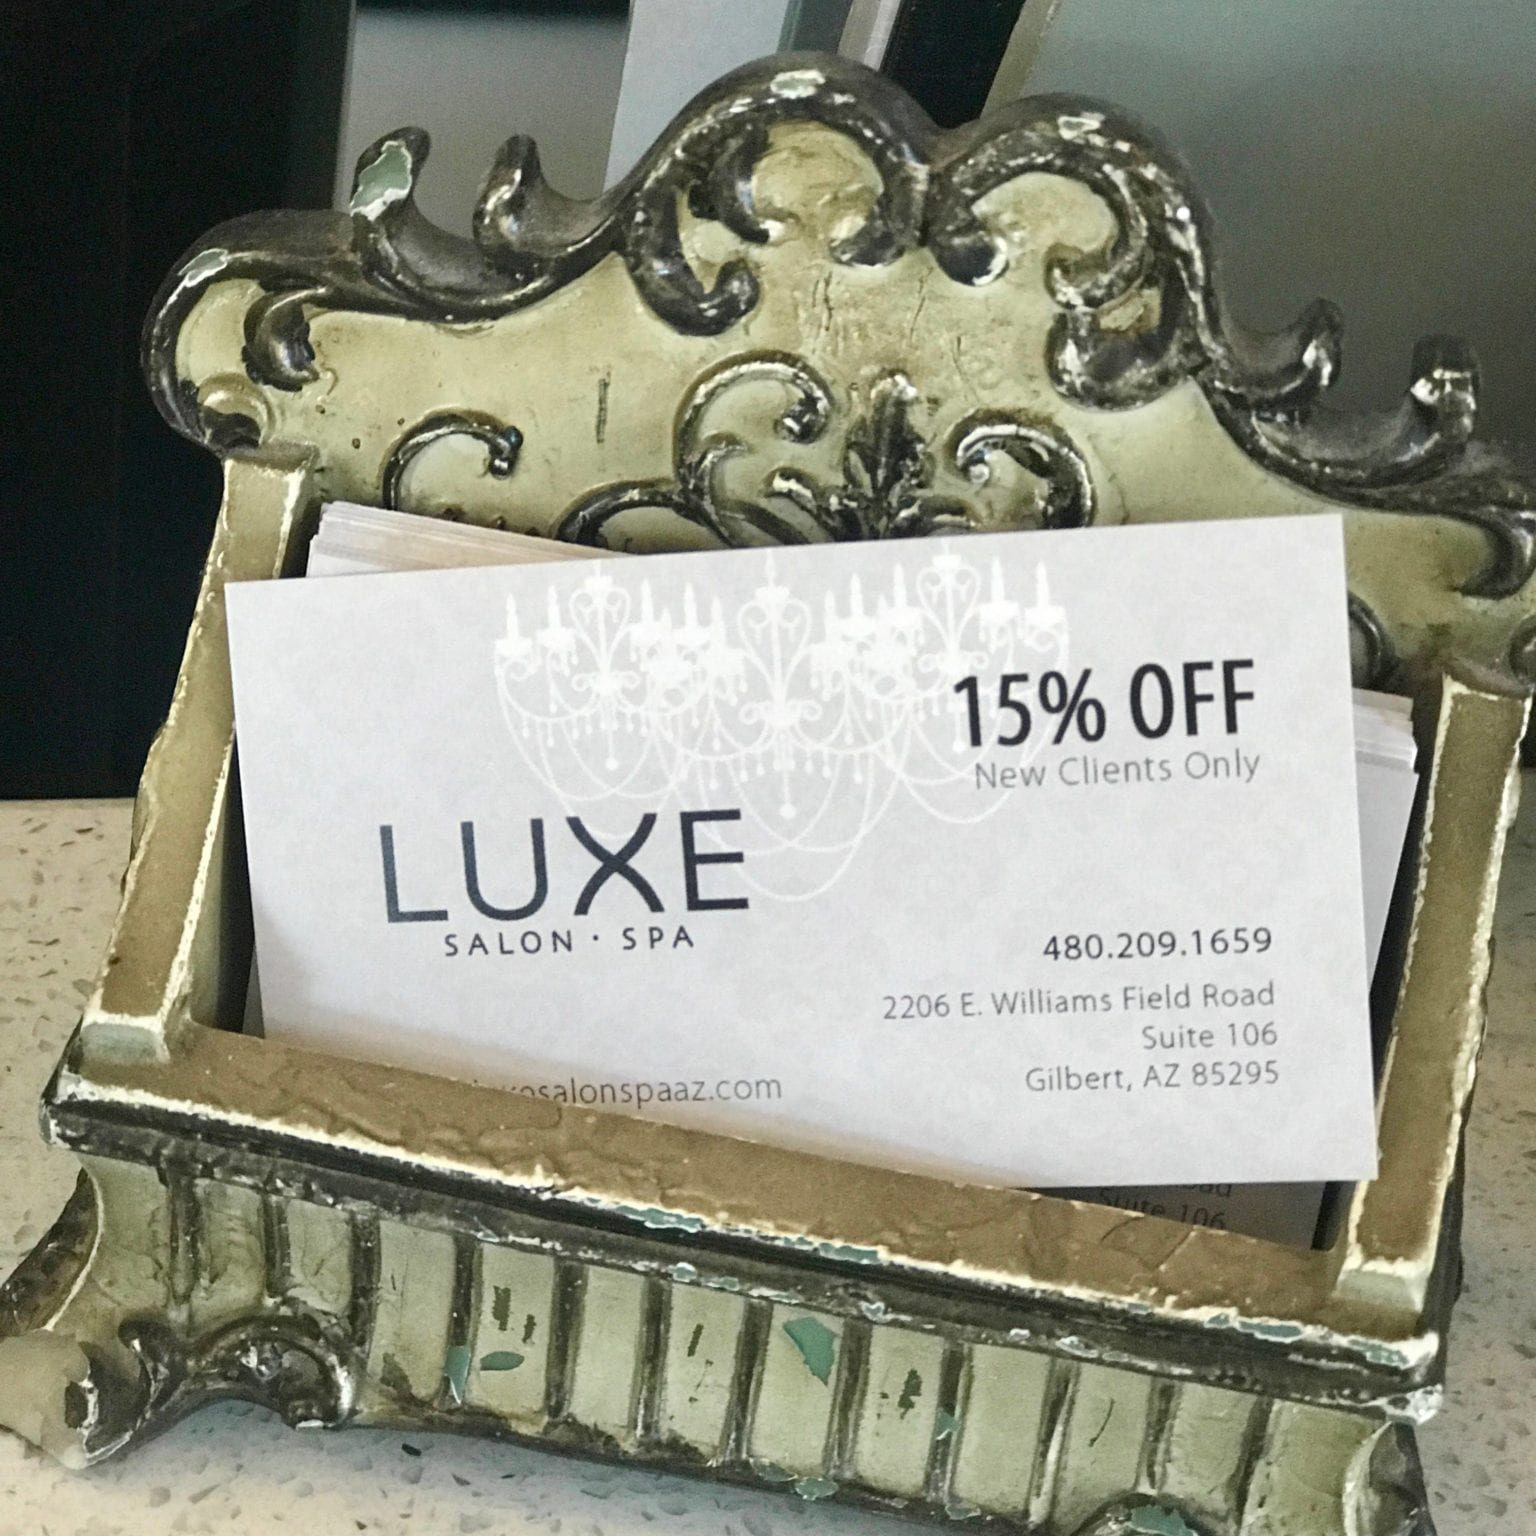 Specials | Luxe Salon + Spa